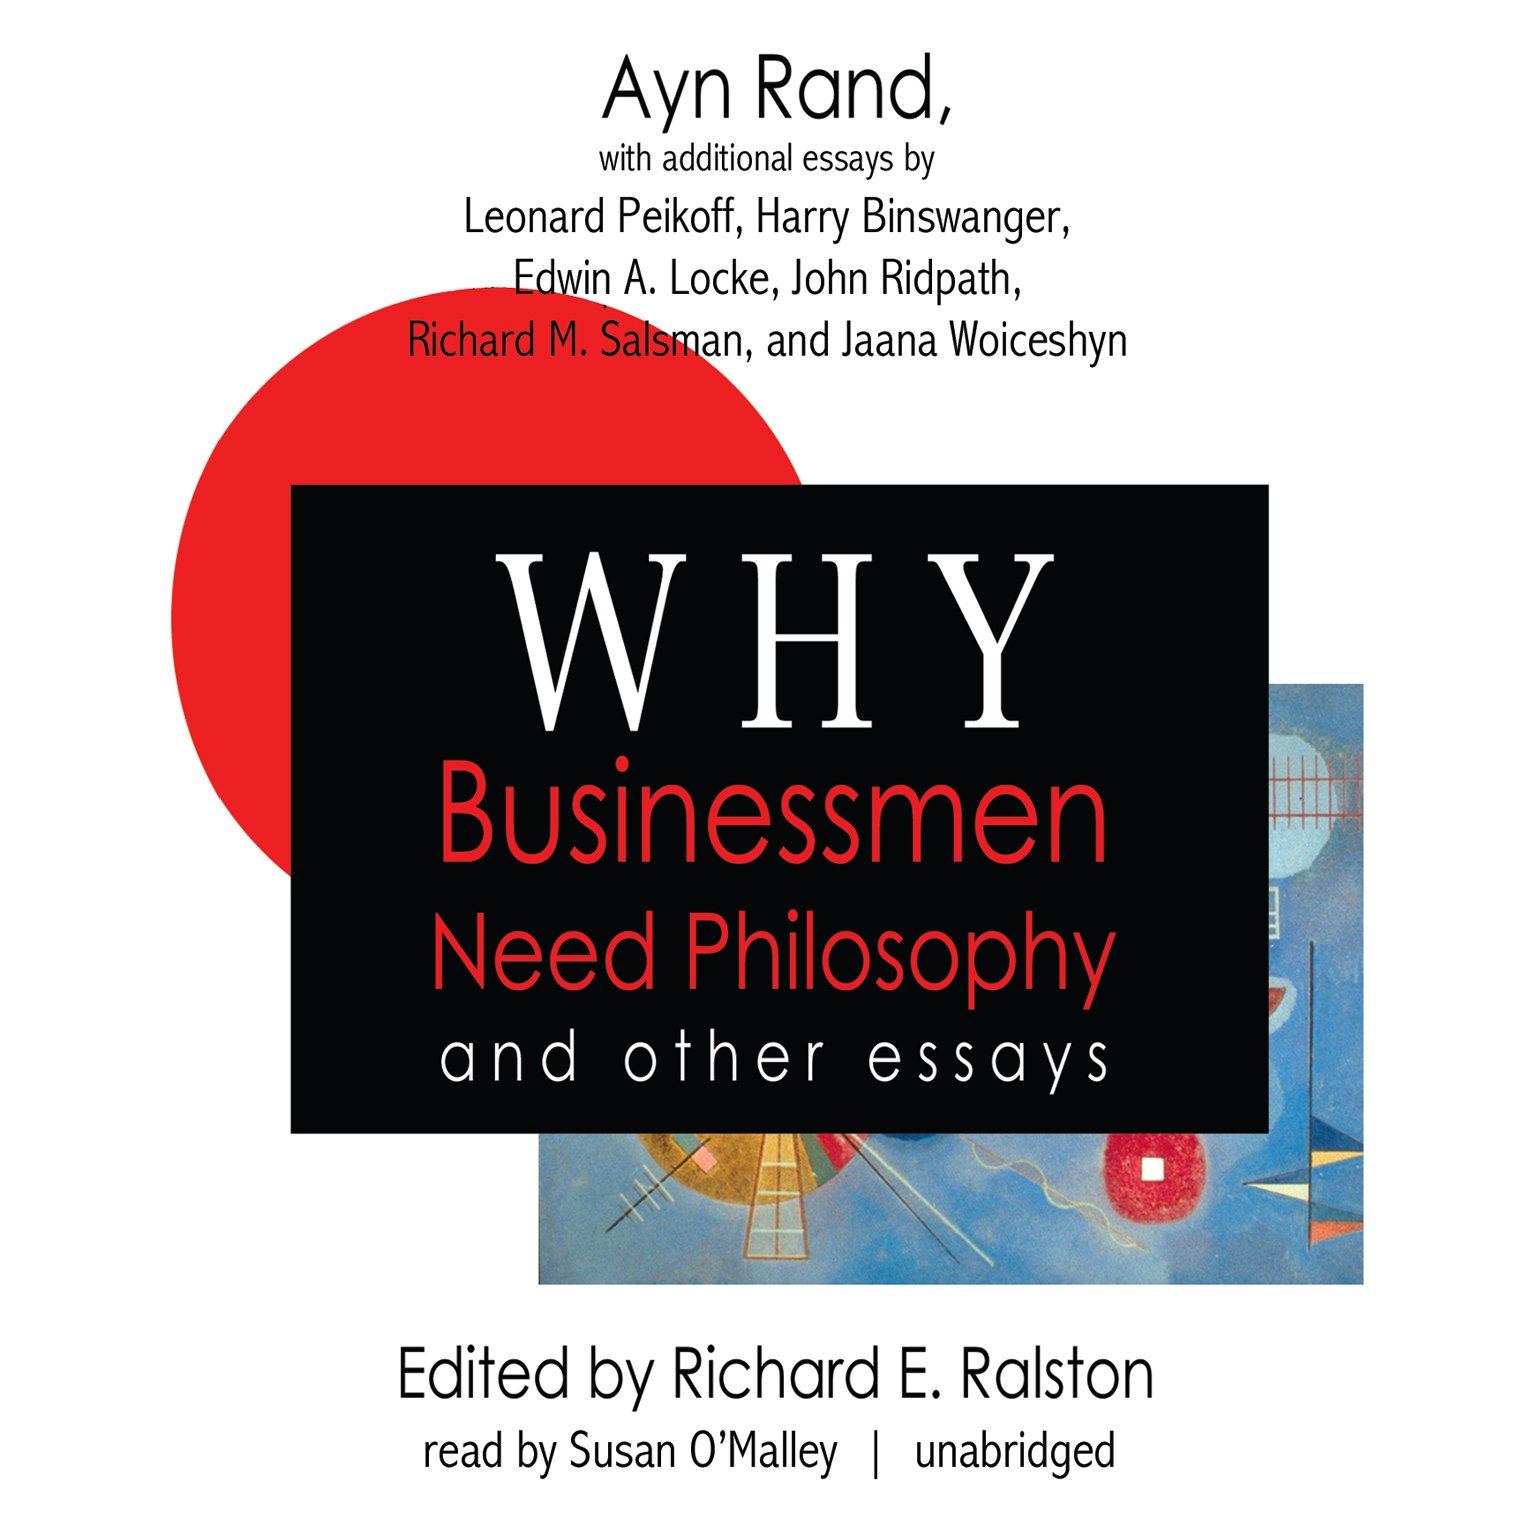 Why Businessmen Need Philosophy - Ayn Rand - reviews for audiobook - quotes, rating, reviews, where to buy